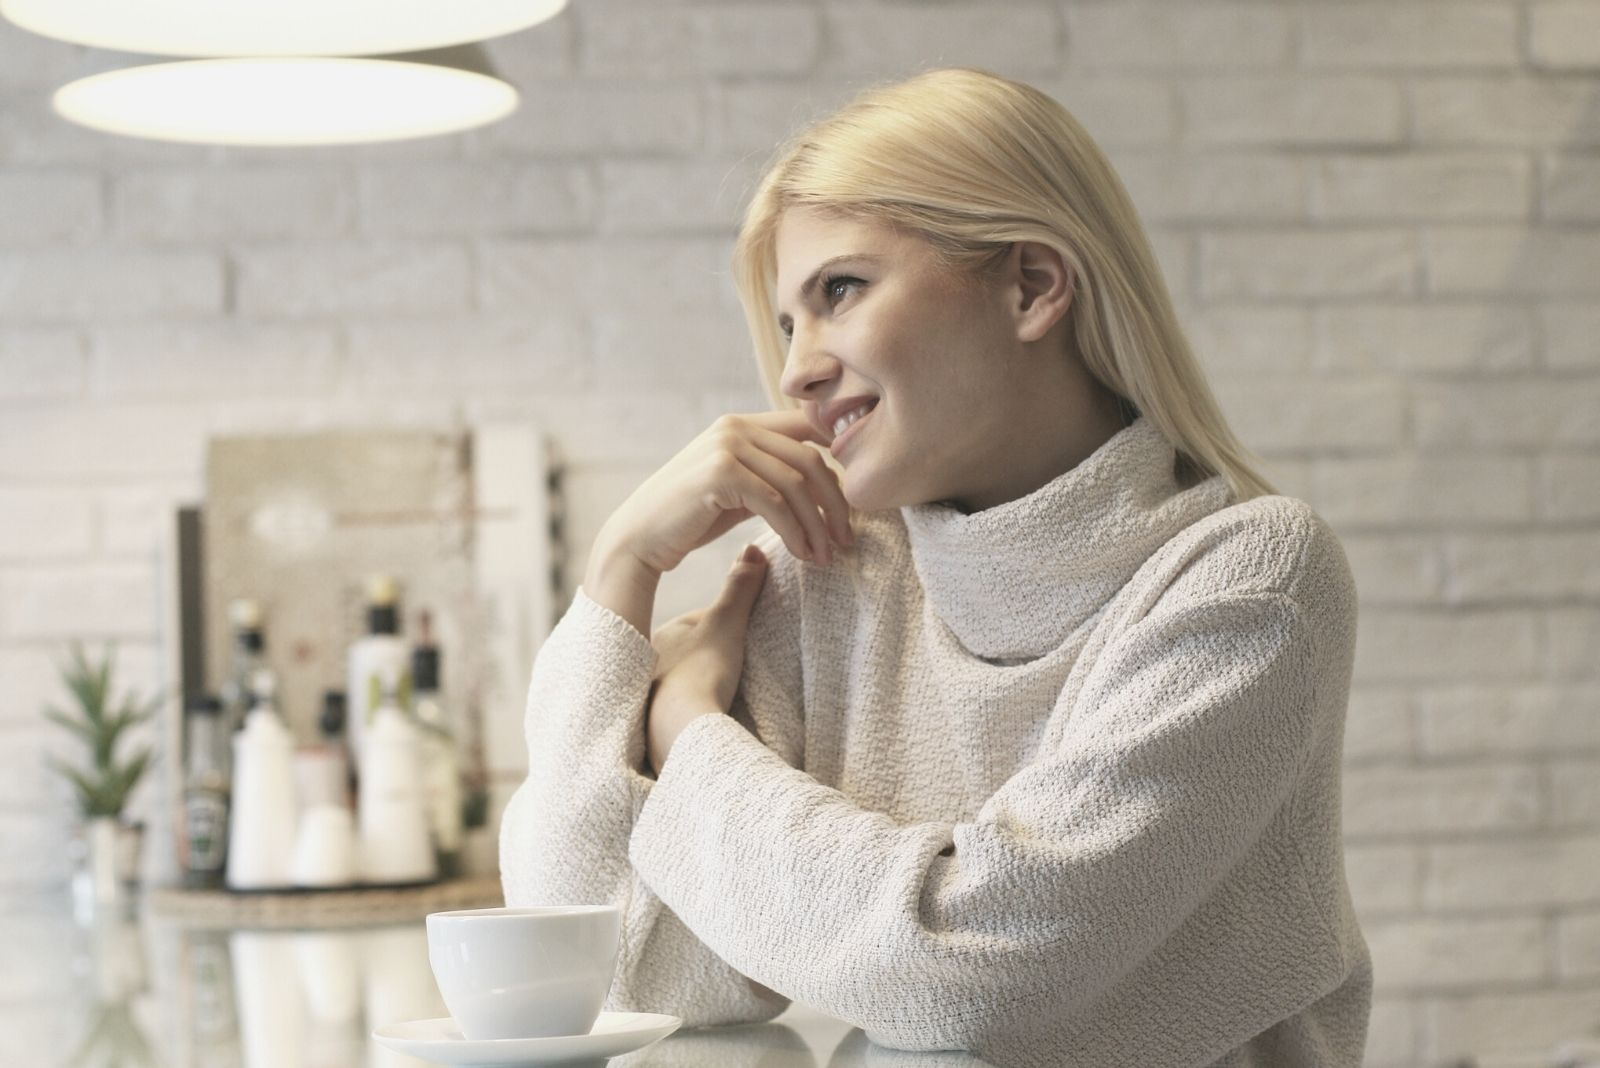 beautiful blonde woman smiling in the morning sitting on the kitchen counter smiling